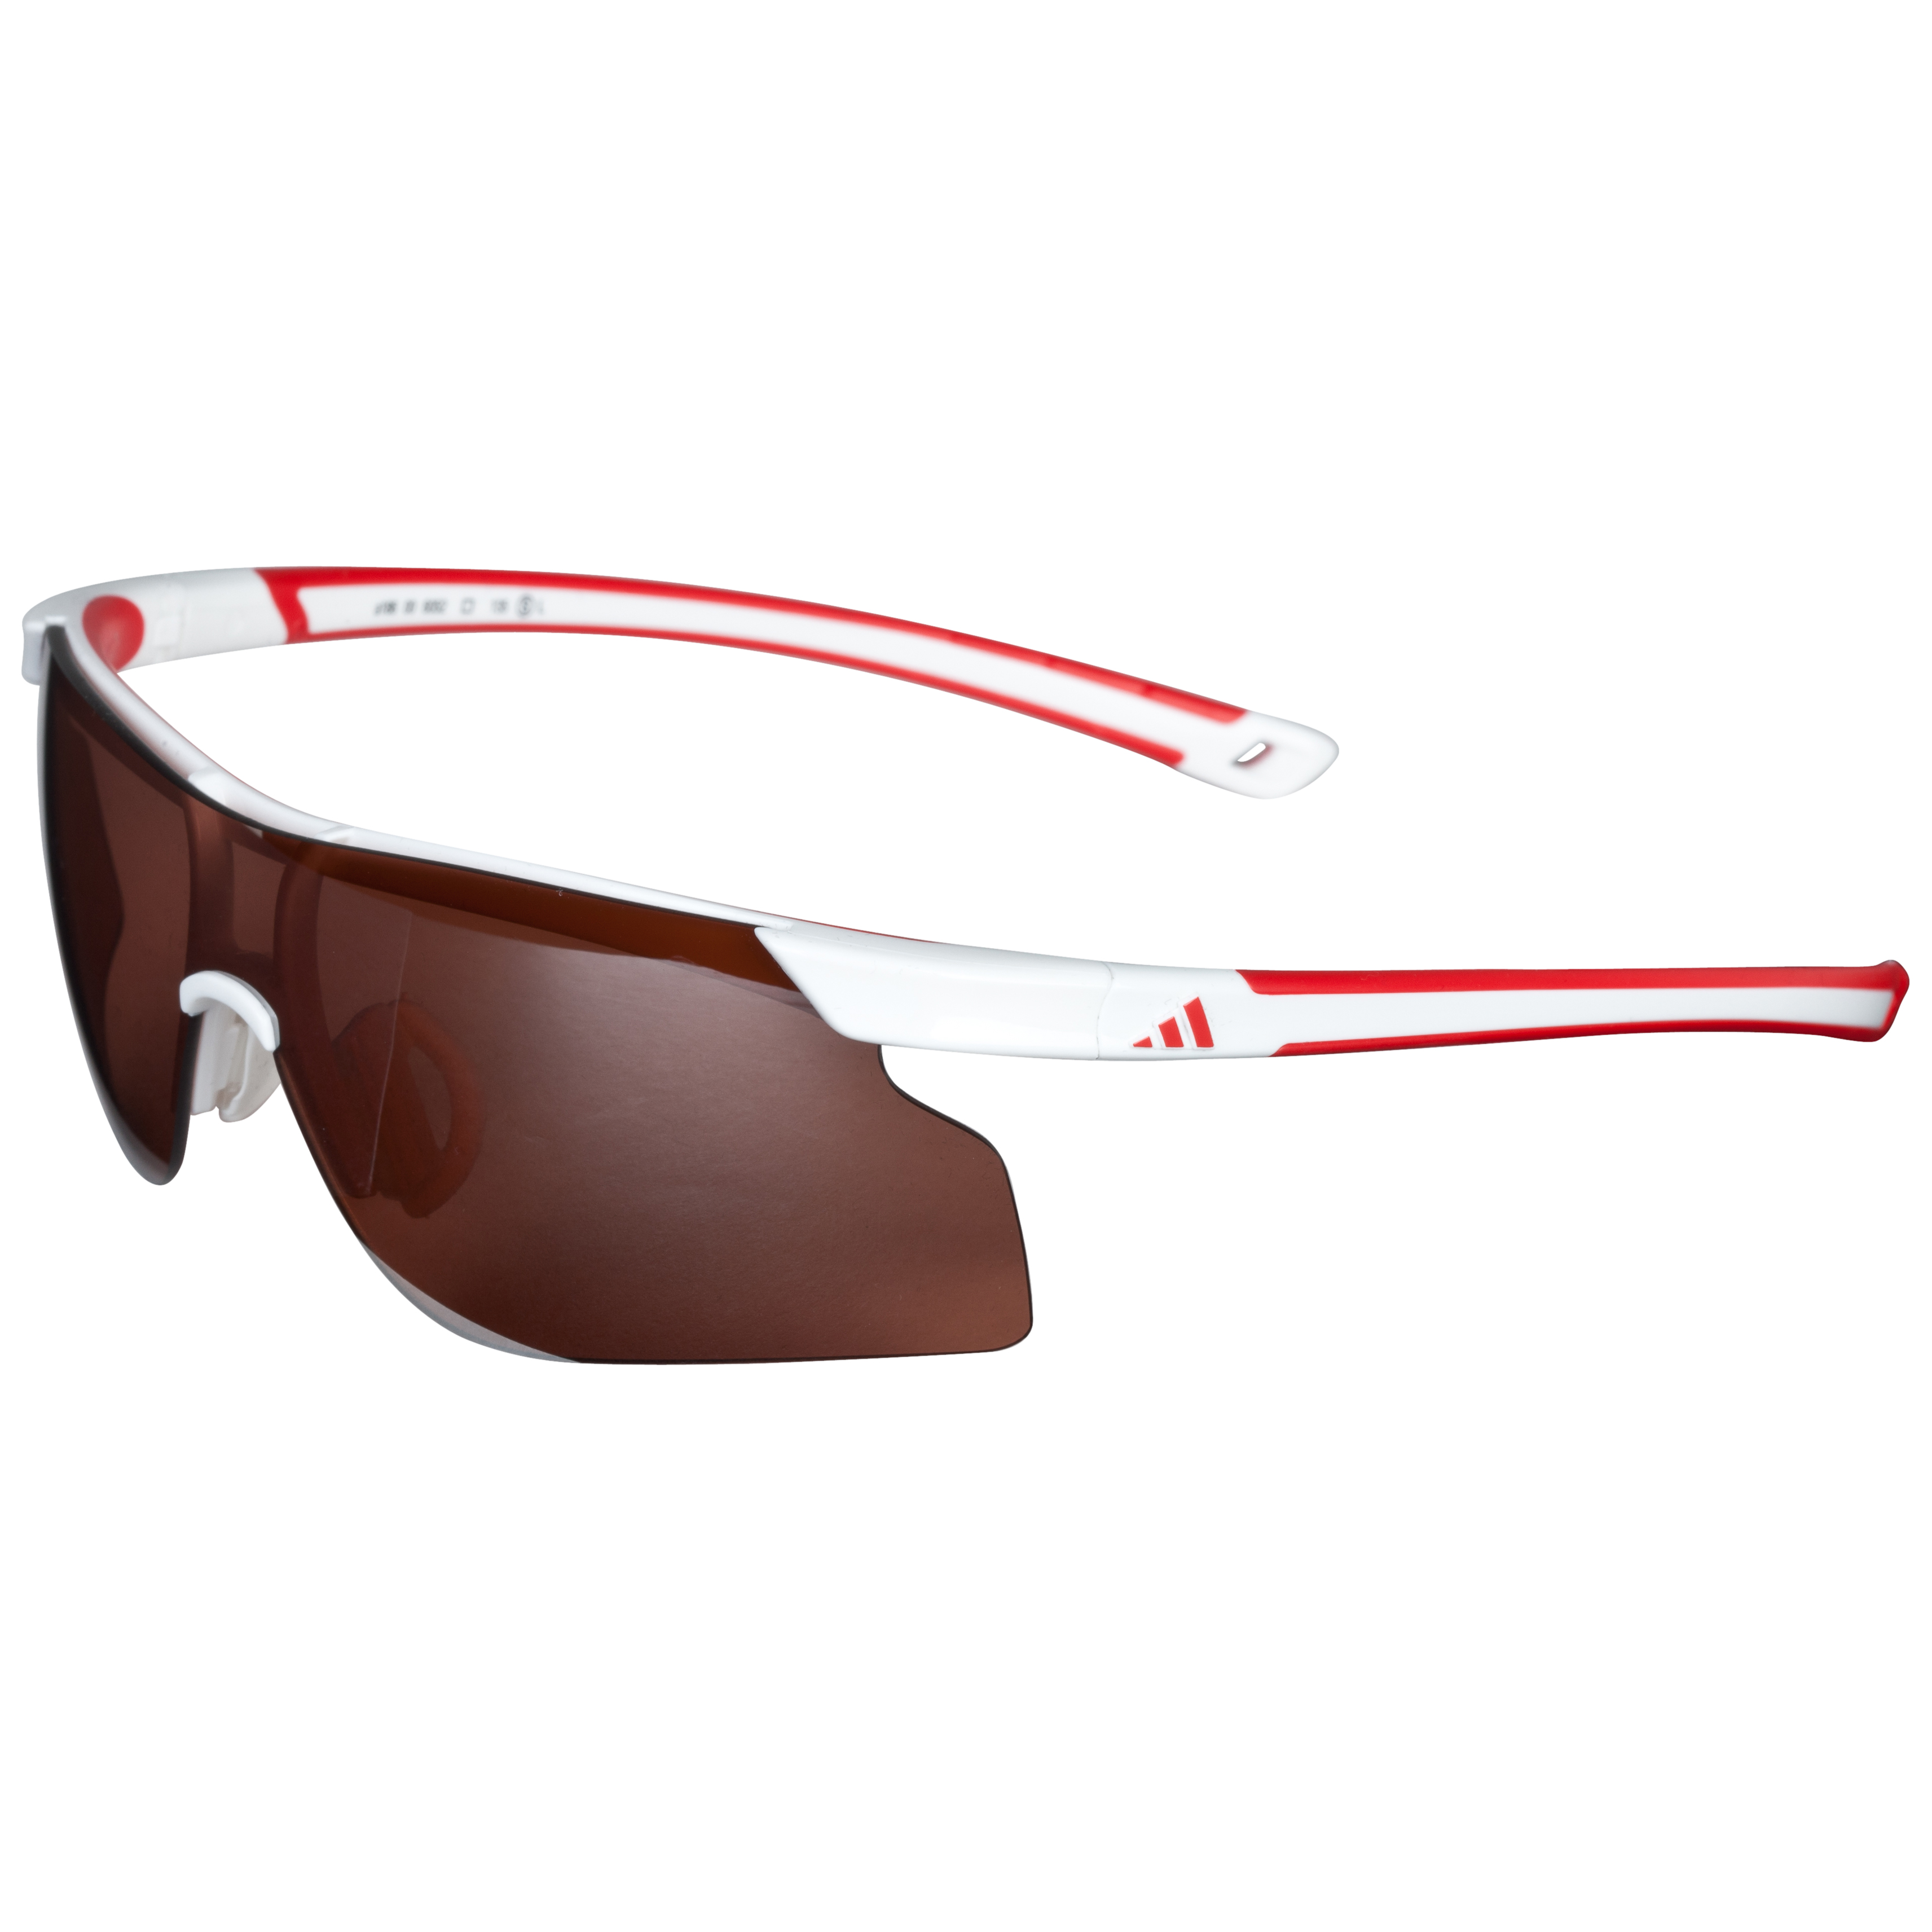 Adidas Adizero Tempo Sunglasses - (White/Red) - Large